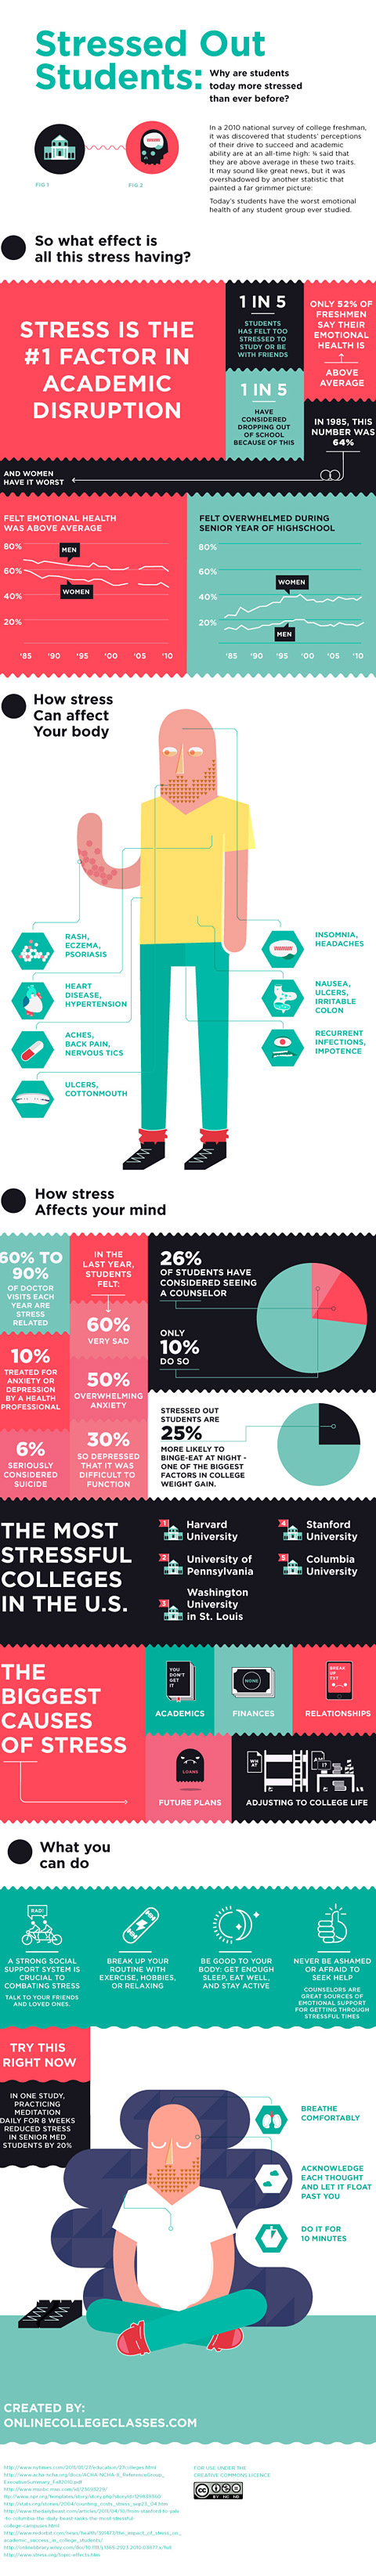 How Stress Affects College Students - Infographic